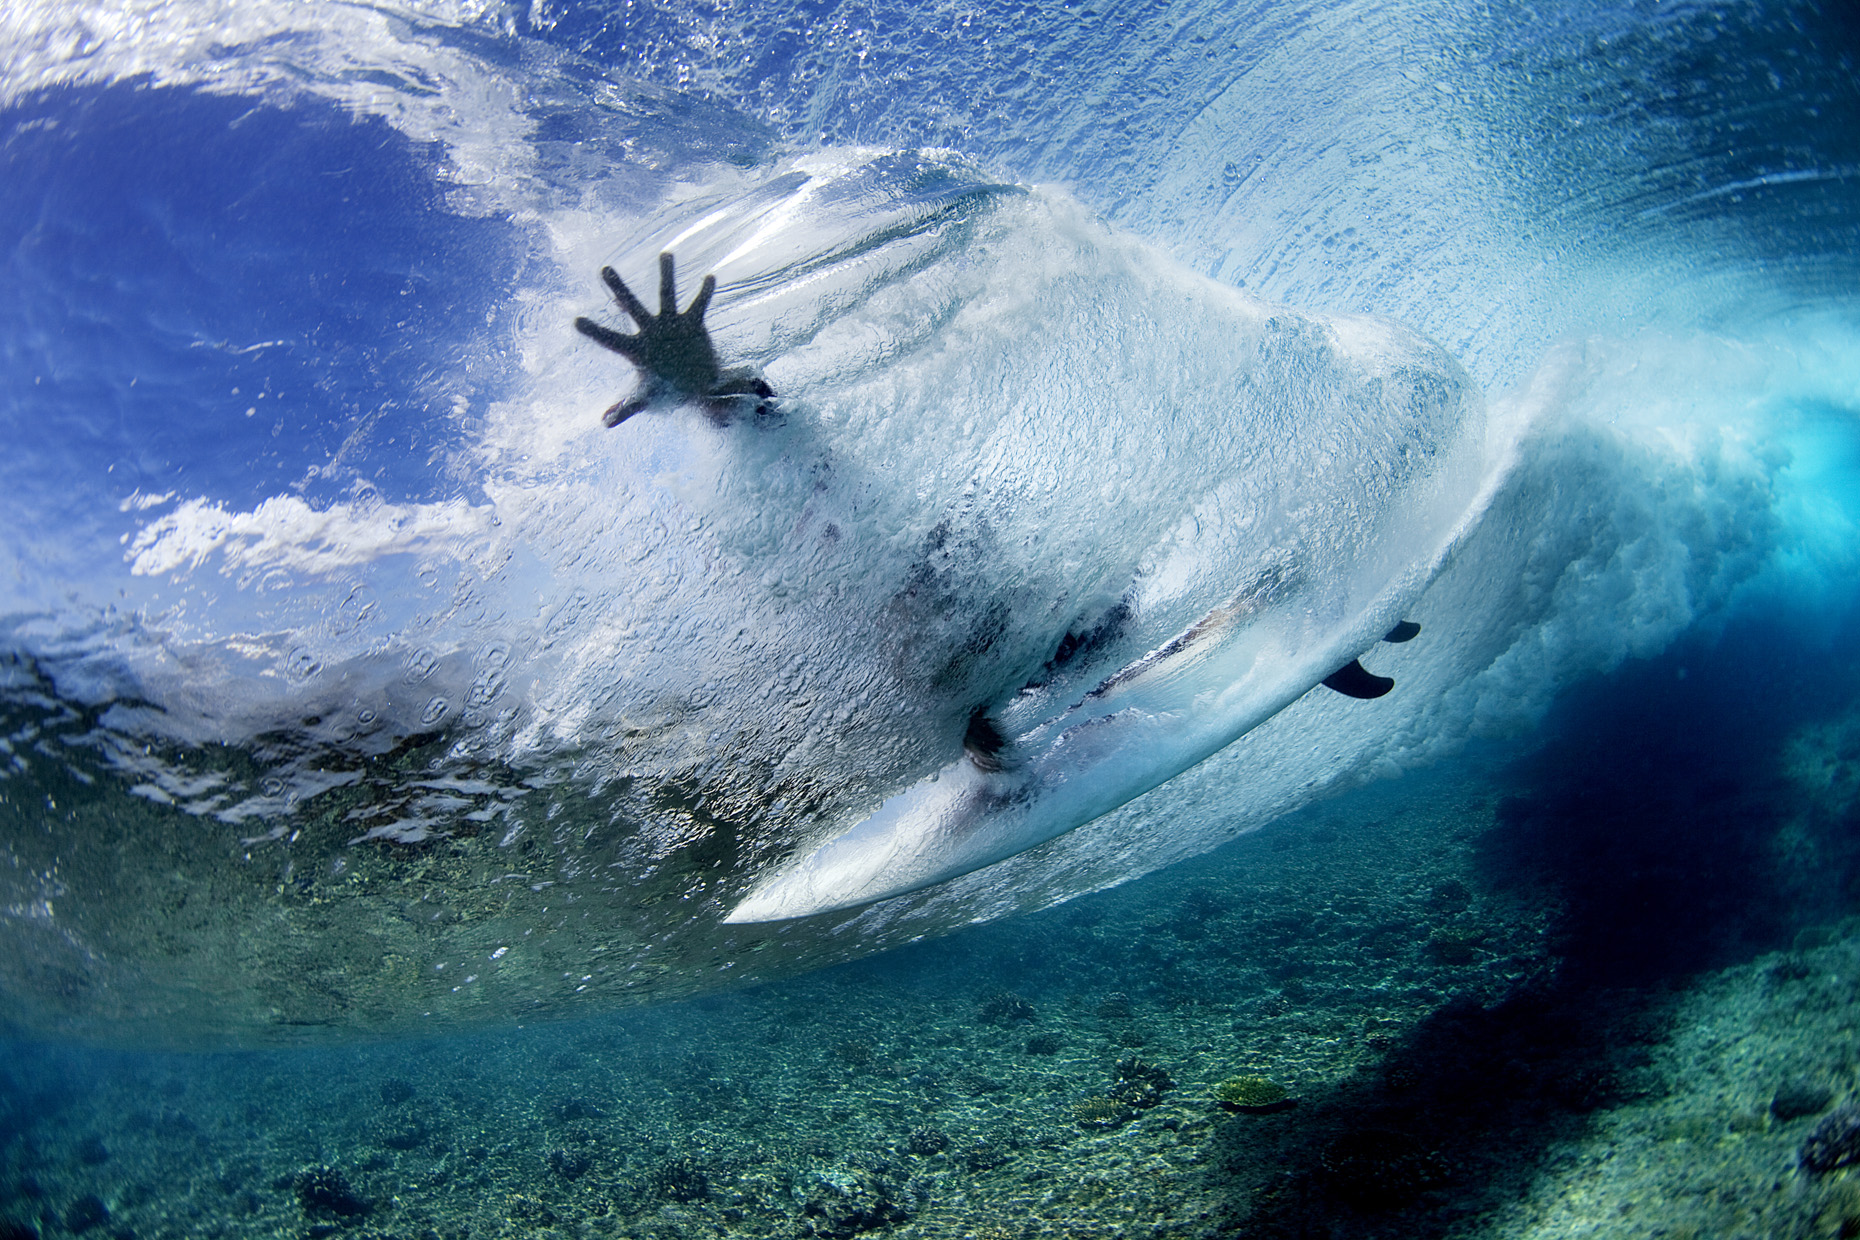 Underwater surfer by Boston based commercial sports photographer Brian Nevins